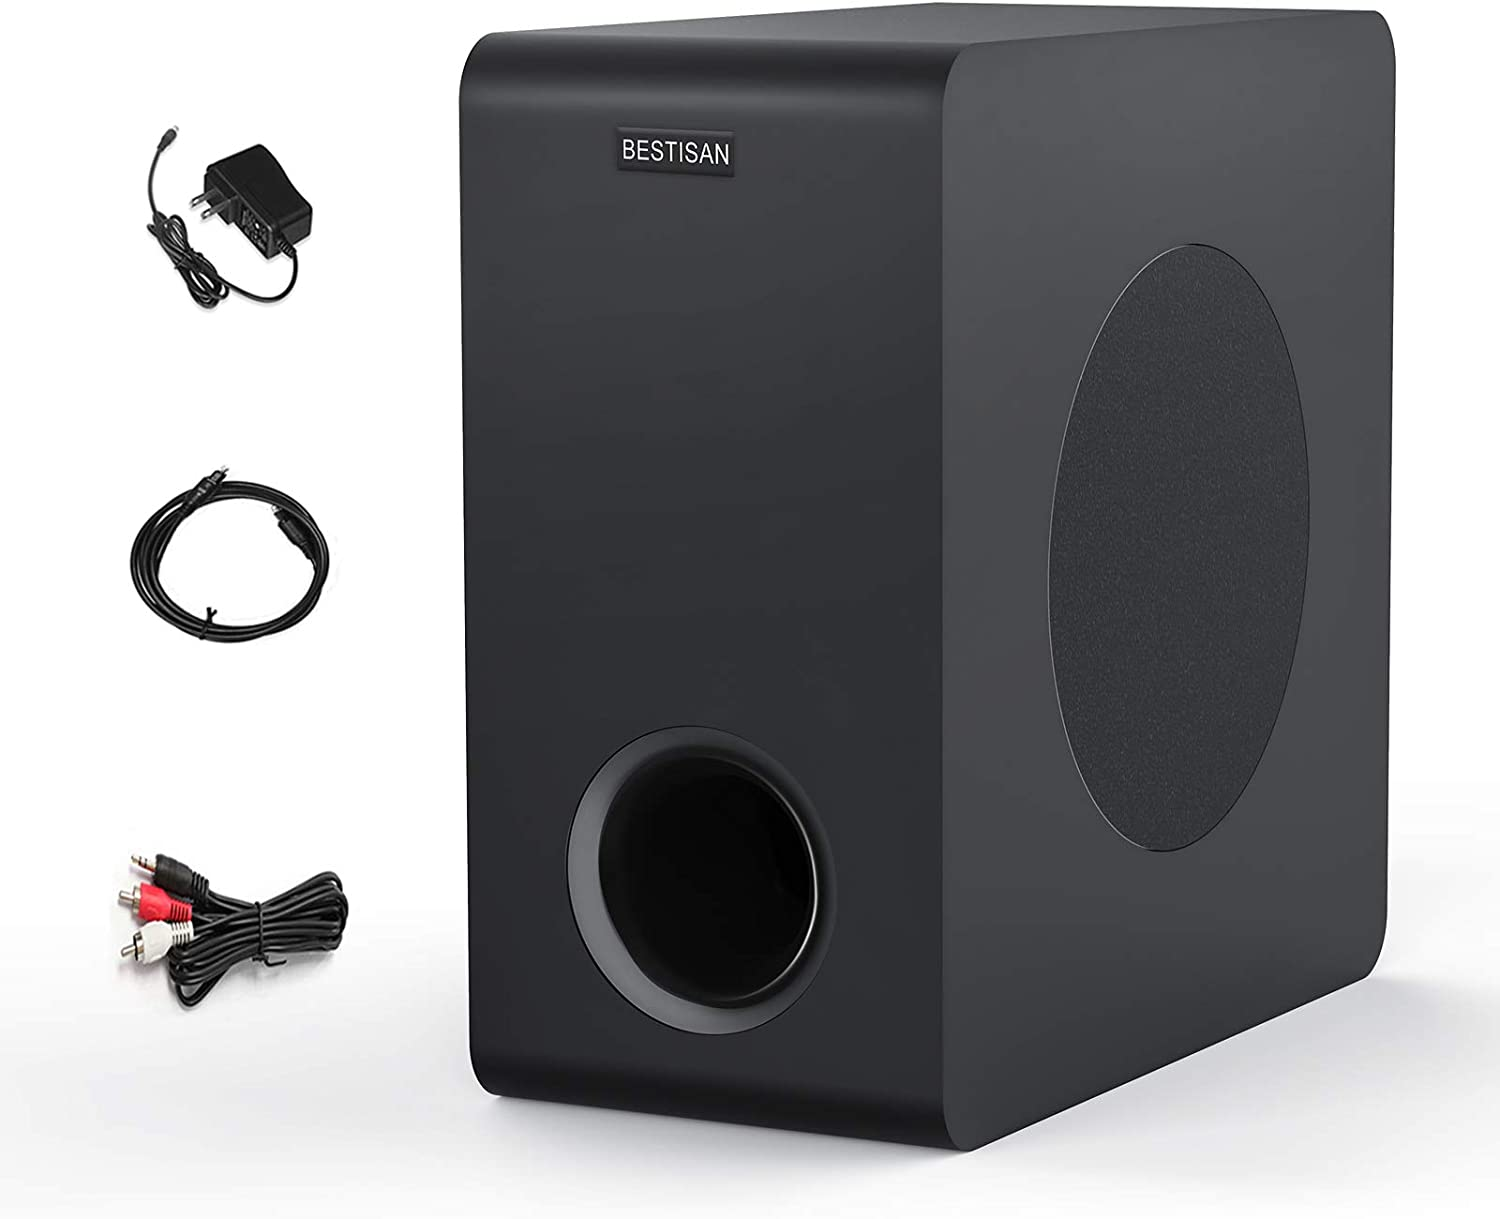 Powered Subwoofer, BESTISAN Home Audio Bluetooth Subwoofer, Deep Base, Built-in Amplifier Wireless Home Theater Subwoofer for TV, Soundbar, Optical/RCA/Bluetooth (6.5 Inch, Black)